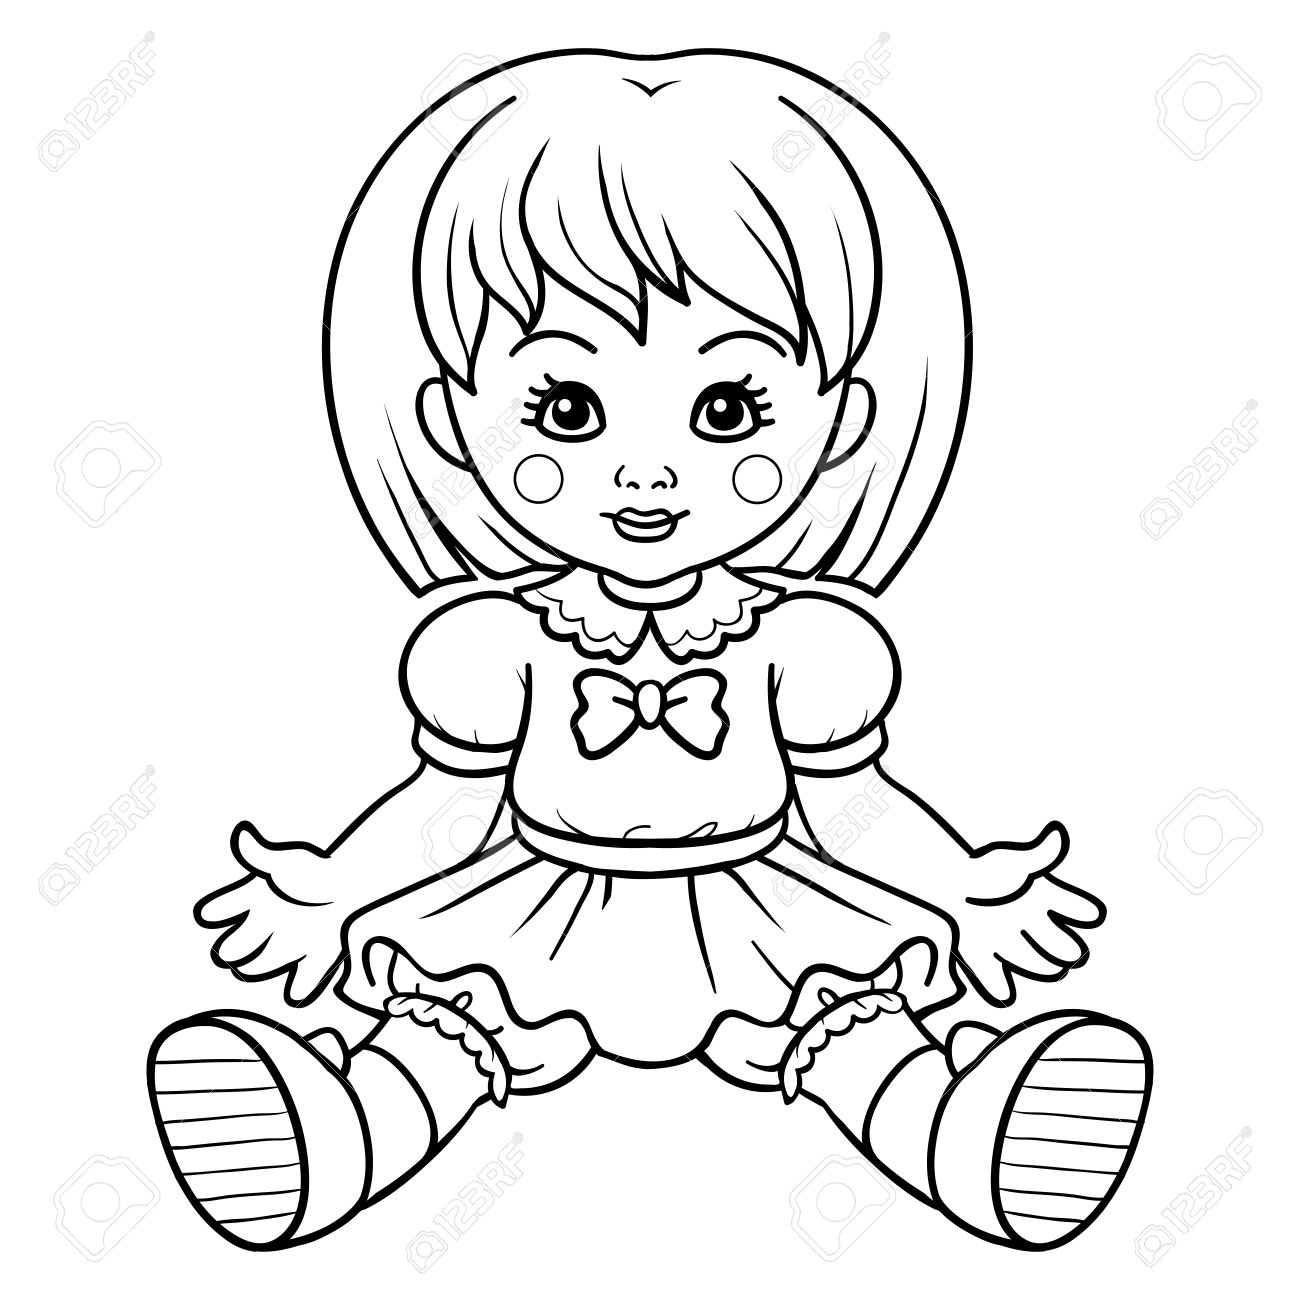 Anime Black And White Coloring Pages